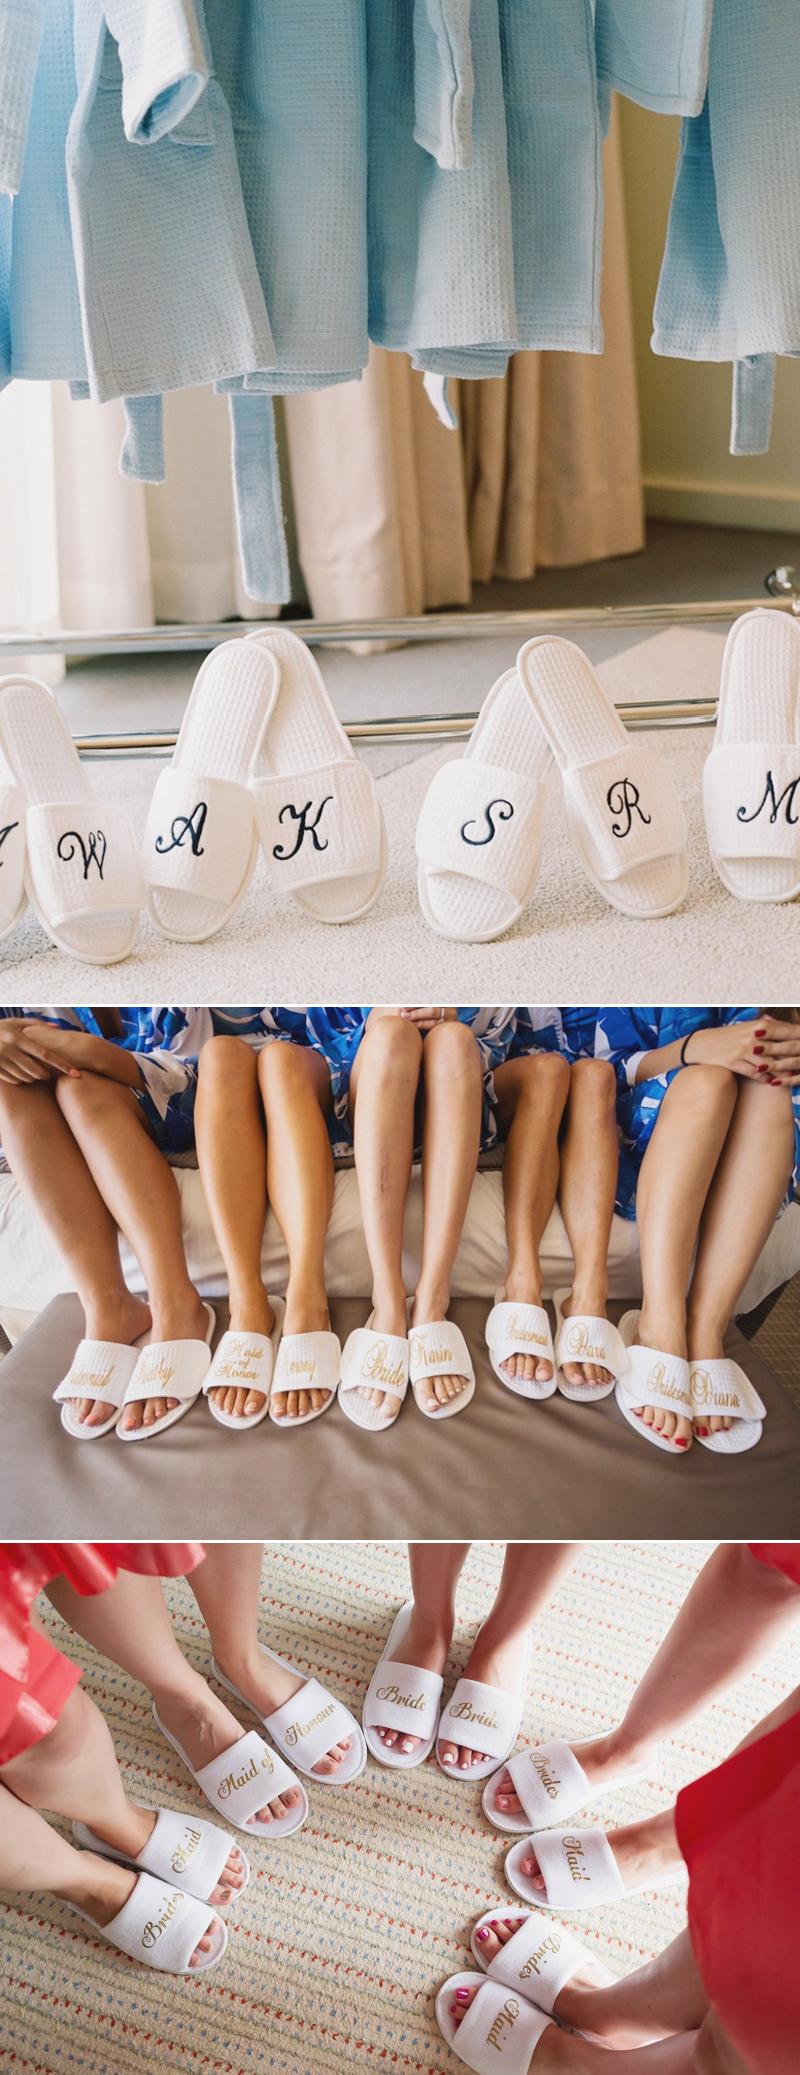 bridesmaid-get-ready04-slippers